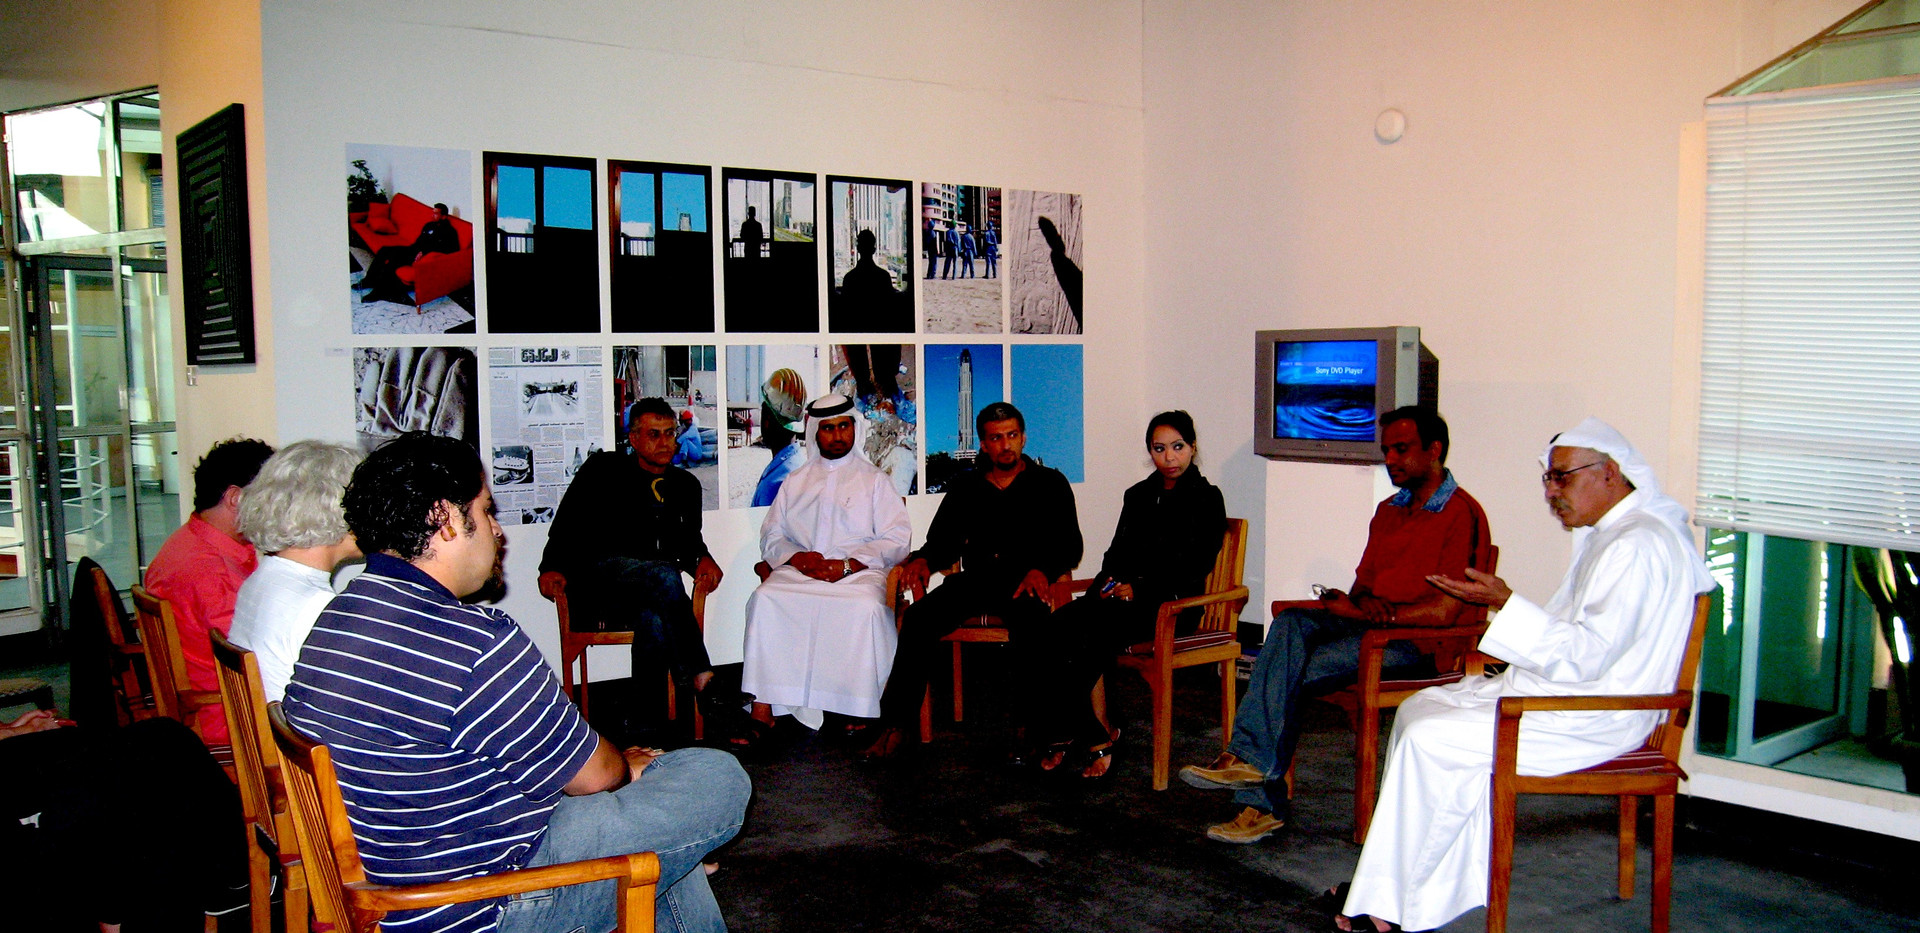 Panel discussion with late artist Hassan Sharif, and Ebtisam Abdulaziz, Khalil Abdulwahed and Mohammed Kazem